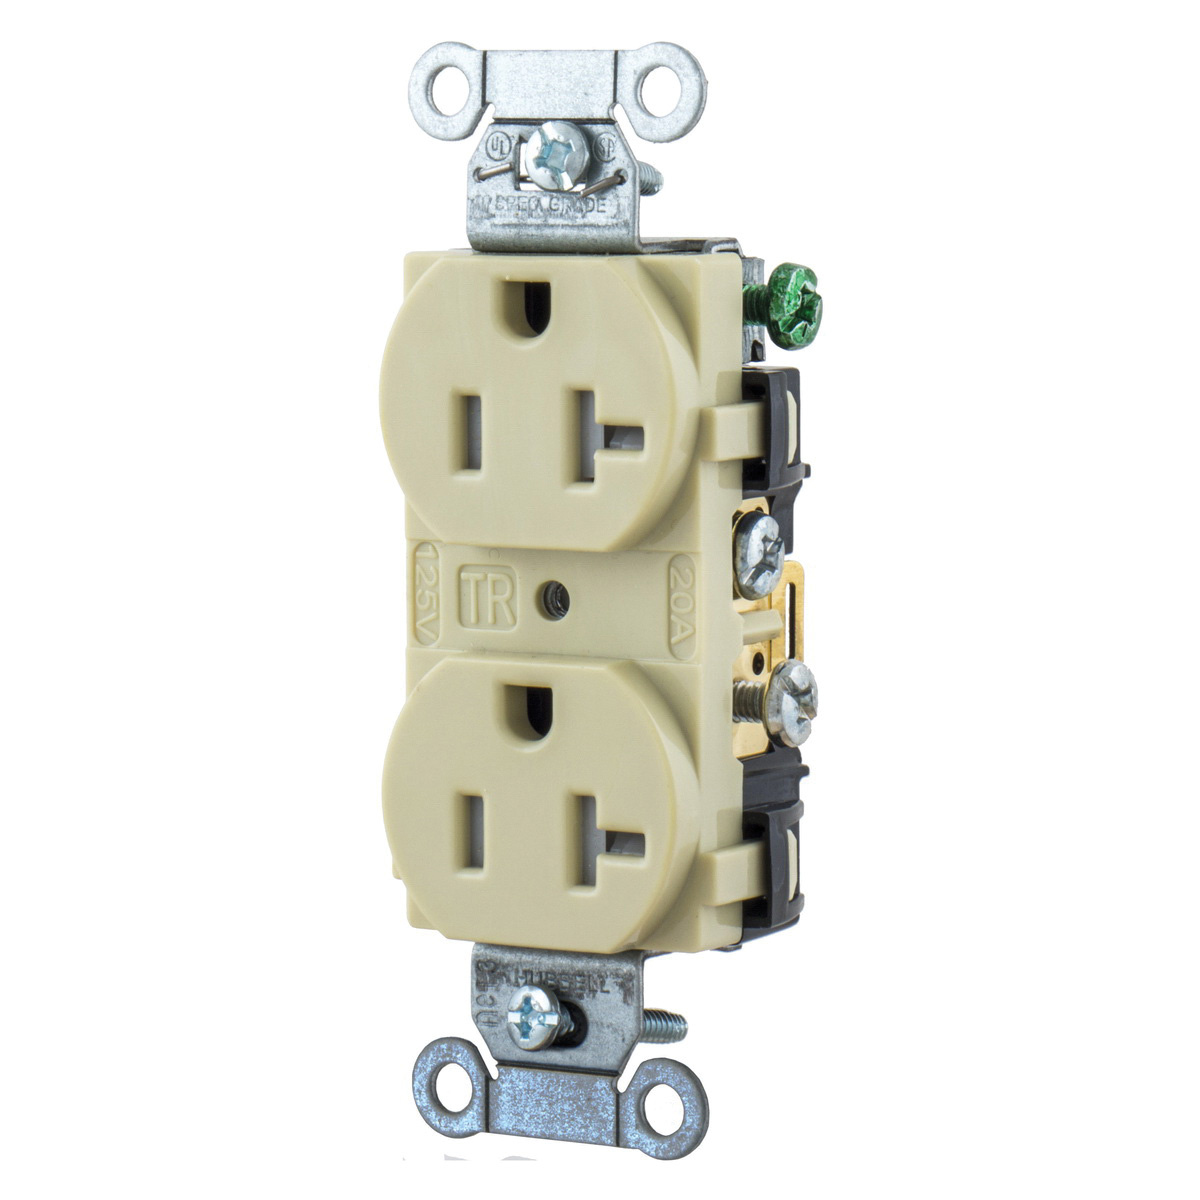 hight resolution of hubbell wiring br20itr 3 wire 2 pole tamper resistant straight blade duplex